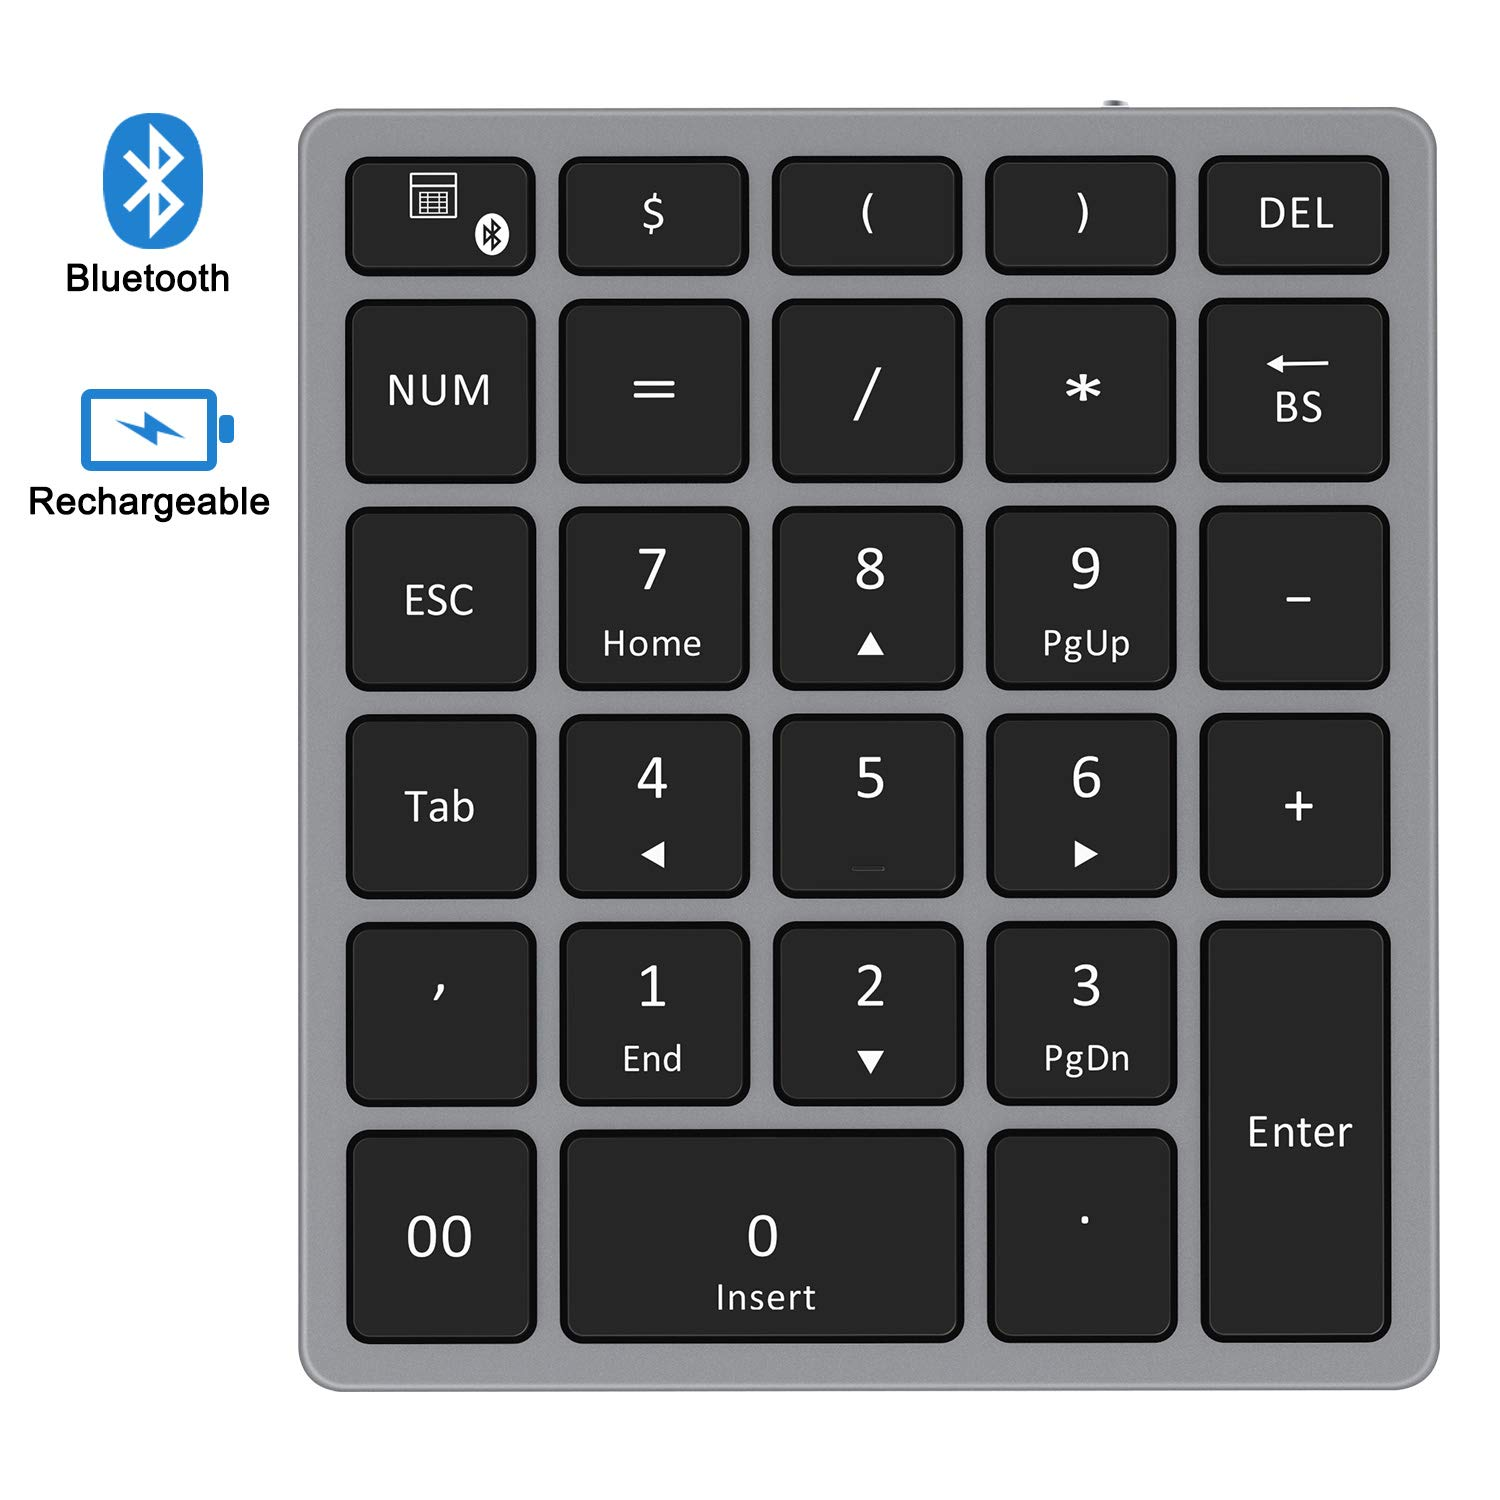 Bluetooth Numeric Keypad, Jelly Comb Rechargeable Portable Wireless Bluetooth 28-Key Number Pad with Multiple Shortcuts for Tablet, Laptop, Notebook, PC, Desktop and More